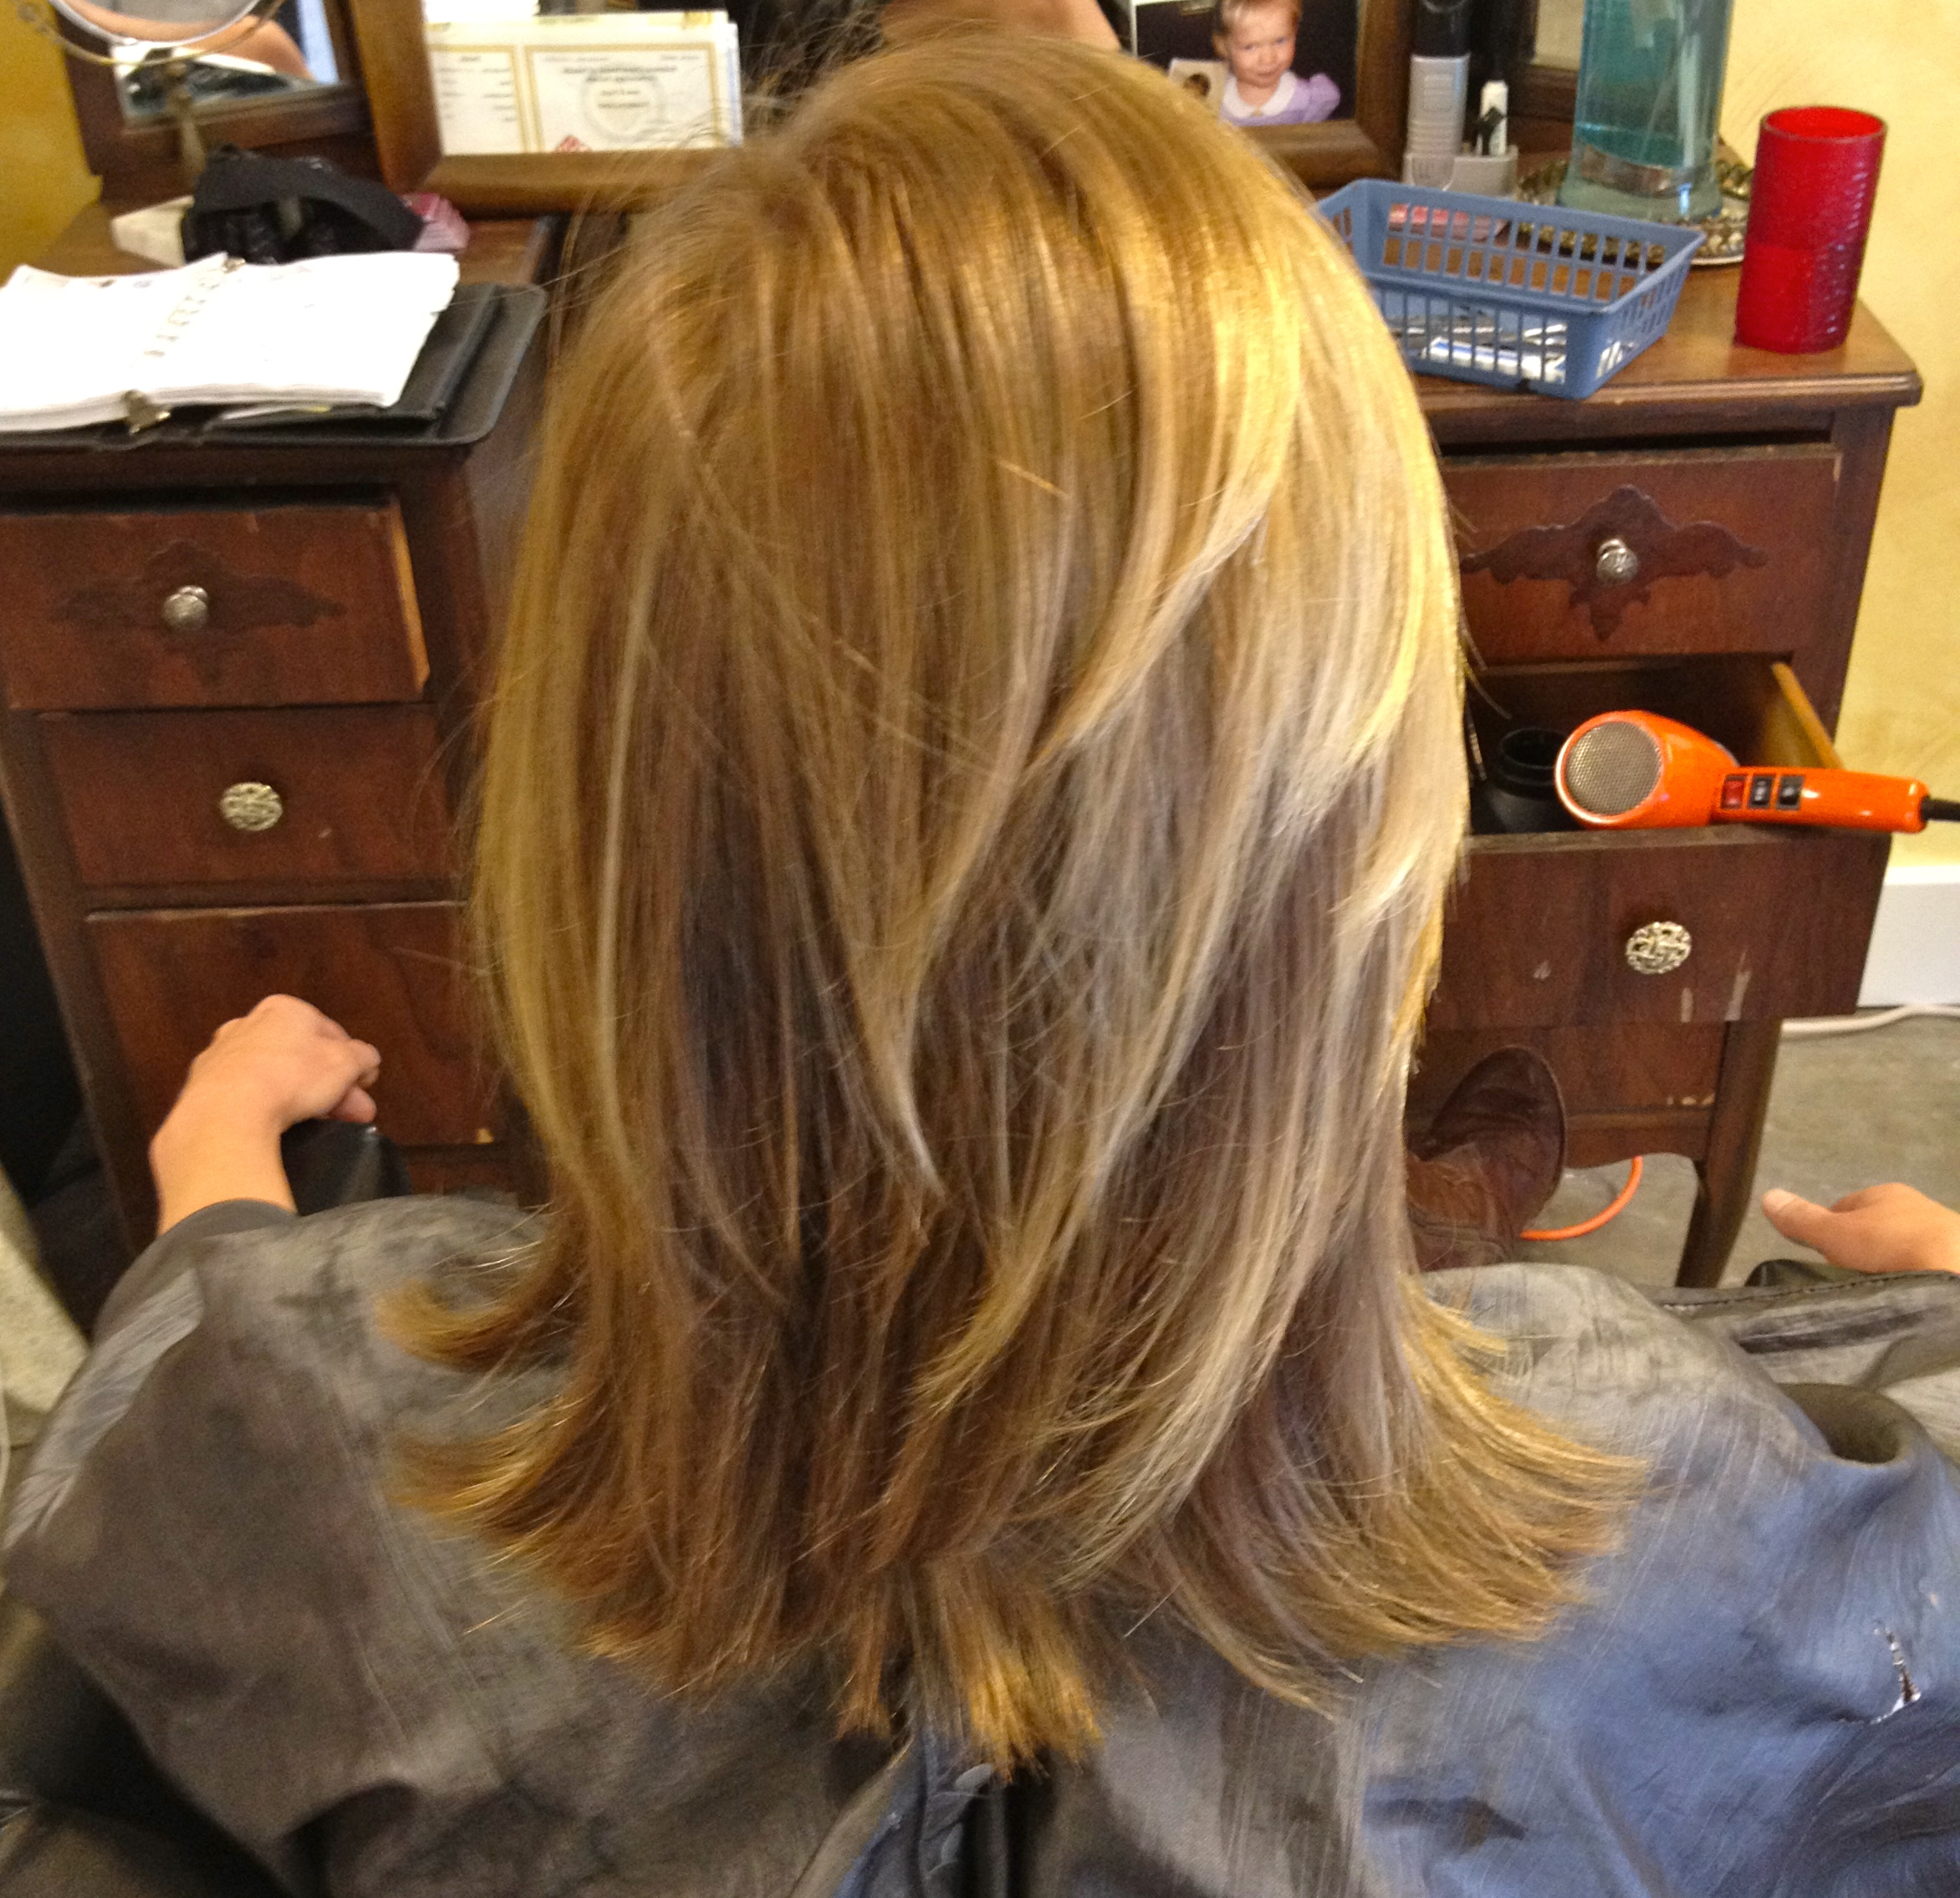 Newest Medium Hairstyles With Feathered Sides Within Long Feathered Layered Hairstyles – Hairstyle For Women & Man (View 15 of 20)